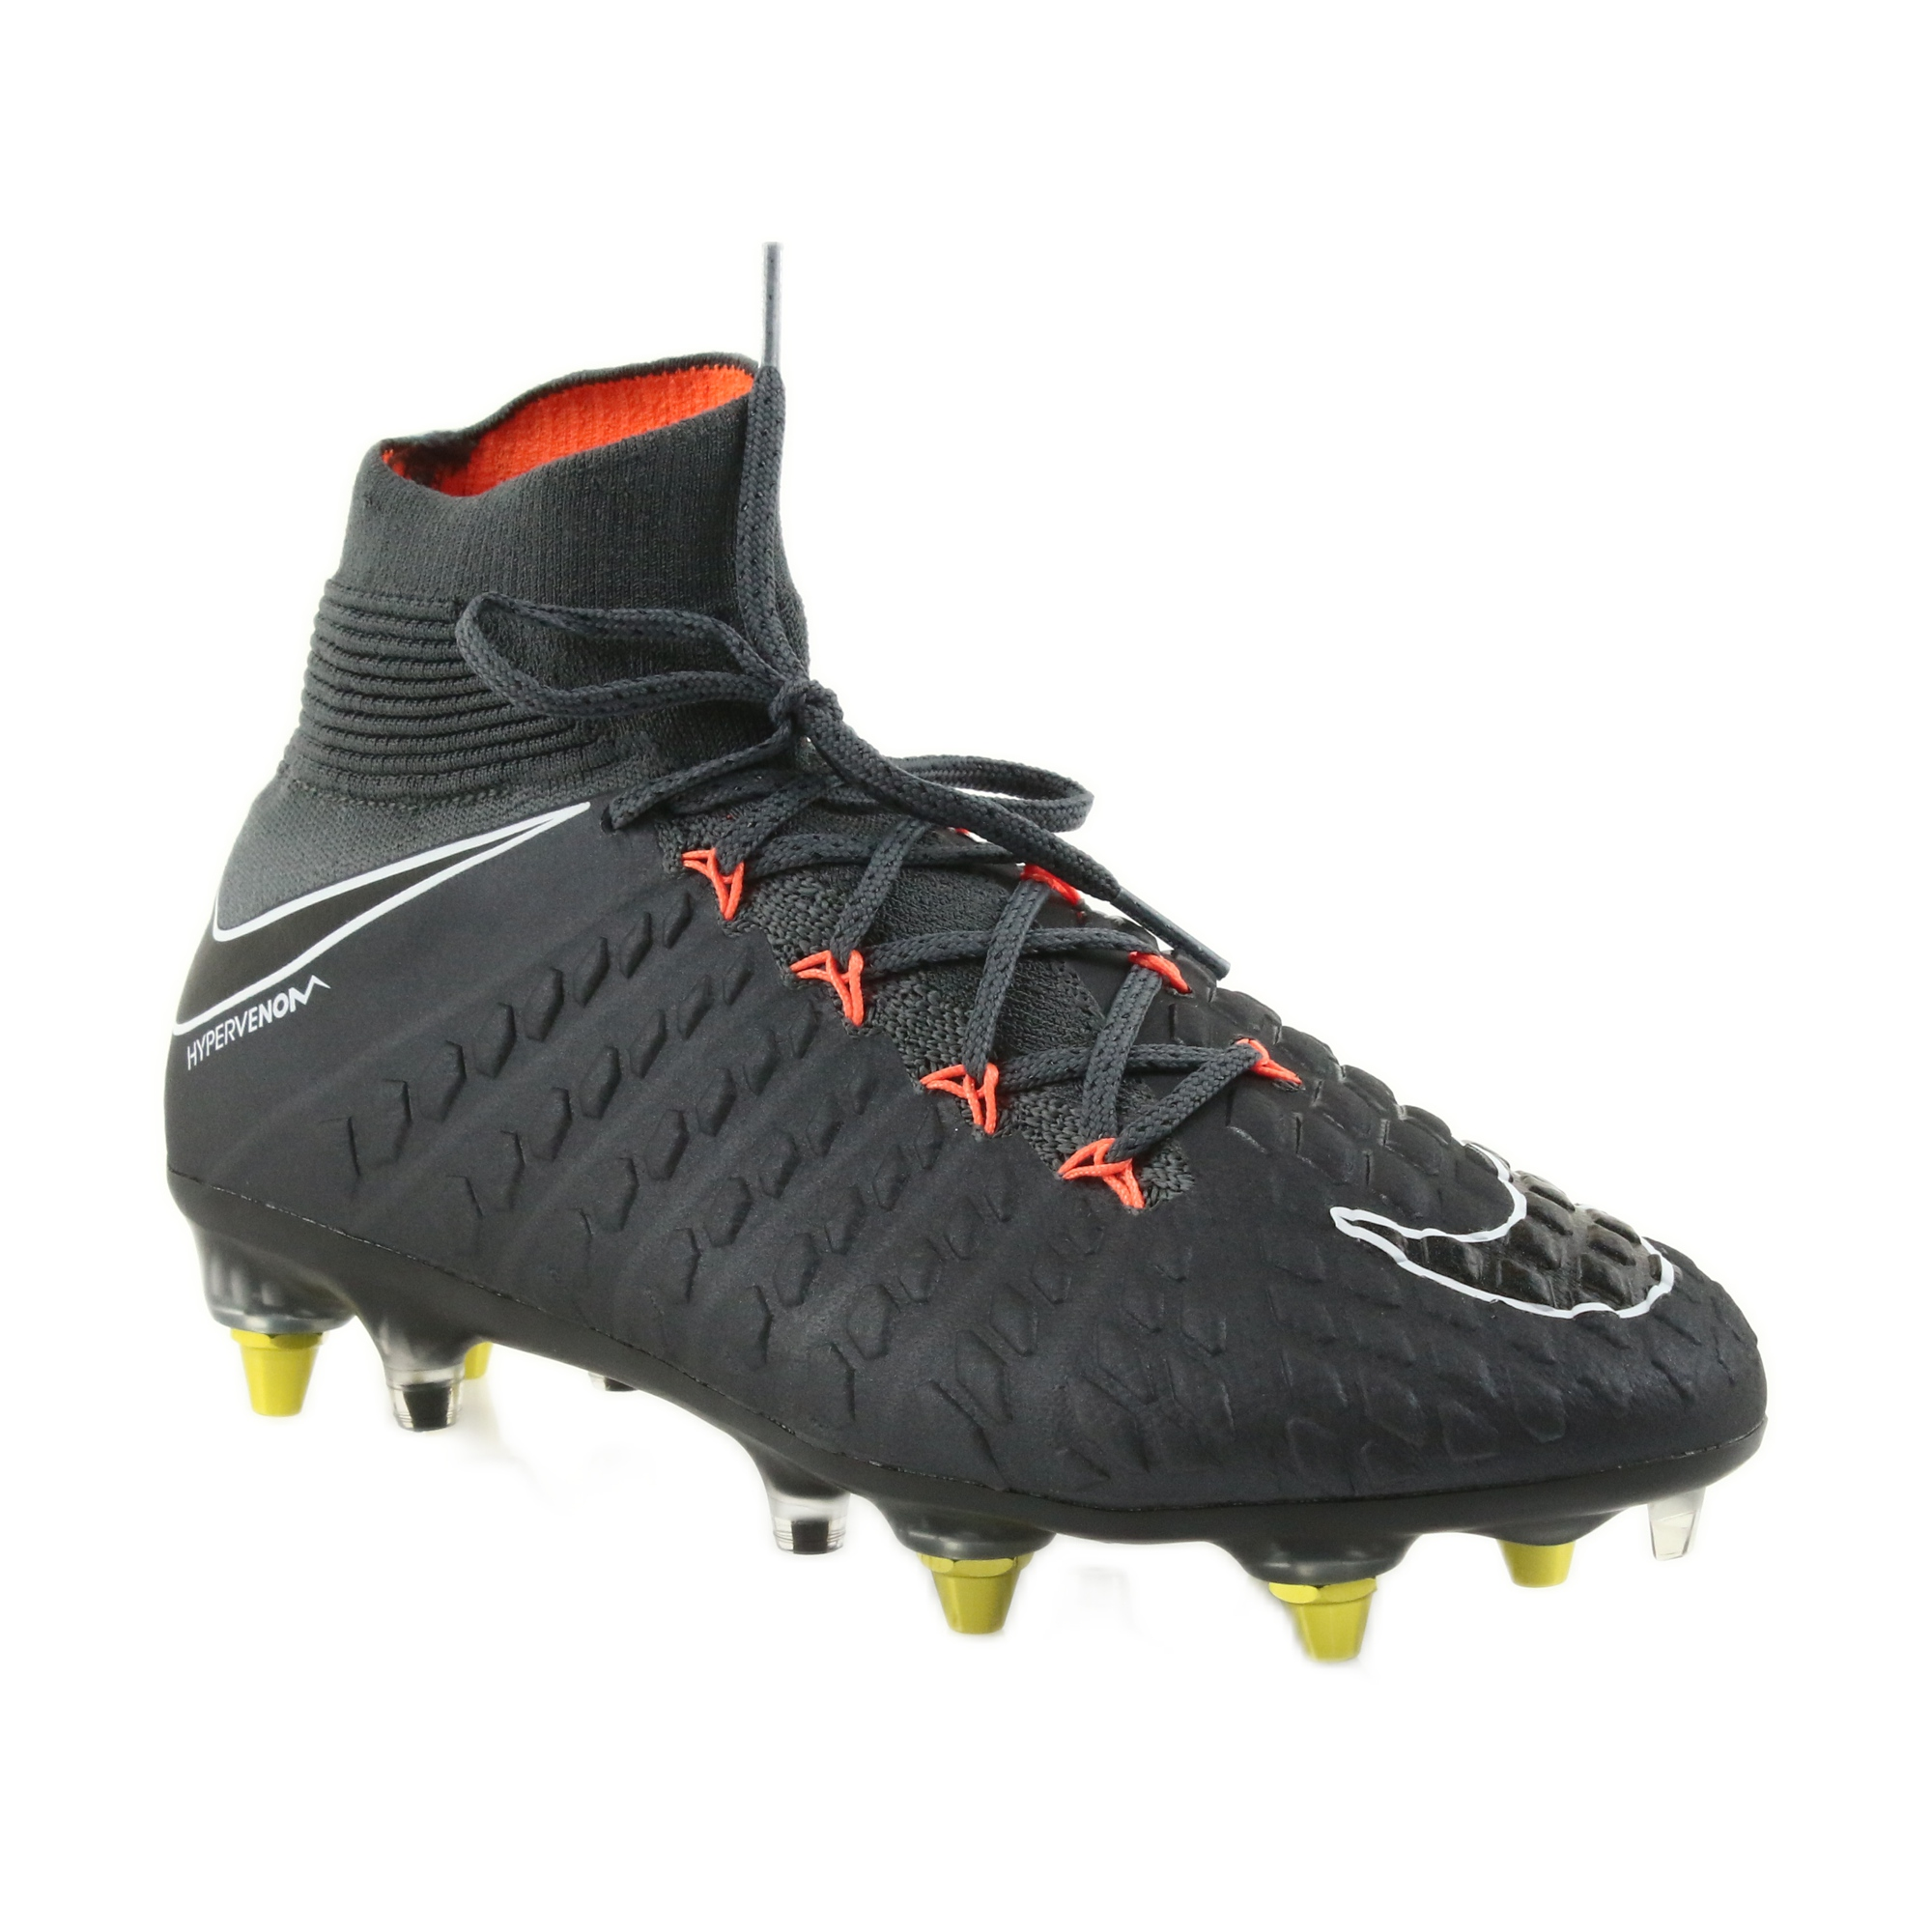 new product 27fda a800e Football shoes Nike Hypervenom Phantom 3